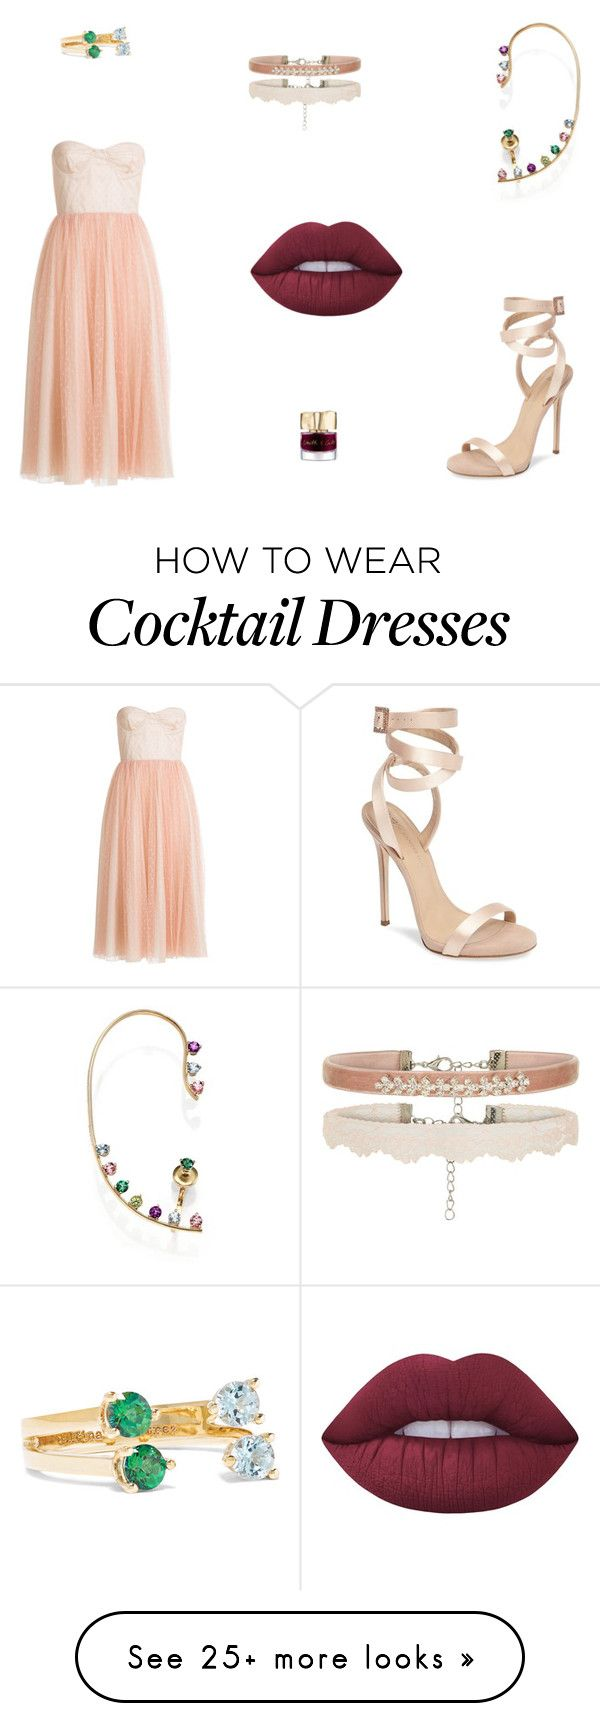 """""""Untitled #8304"""" by mie-miemie on Polyvore featuring RED Valentino, Delfina Delettrez, Giuseppe Zanotti, Lime Crime and Smith & Cult"""